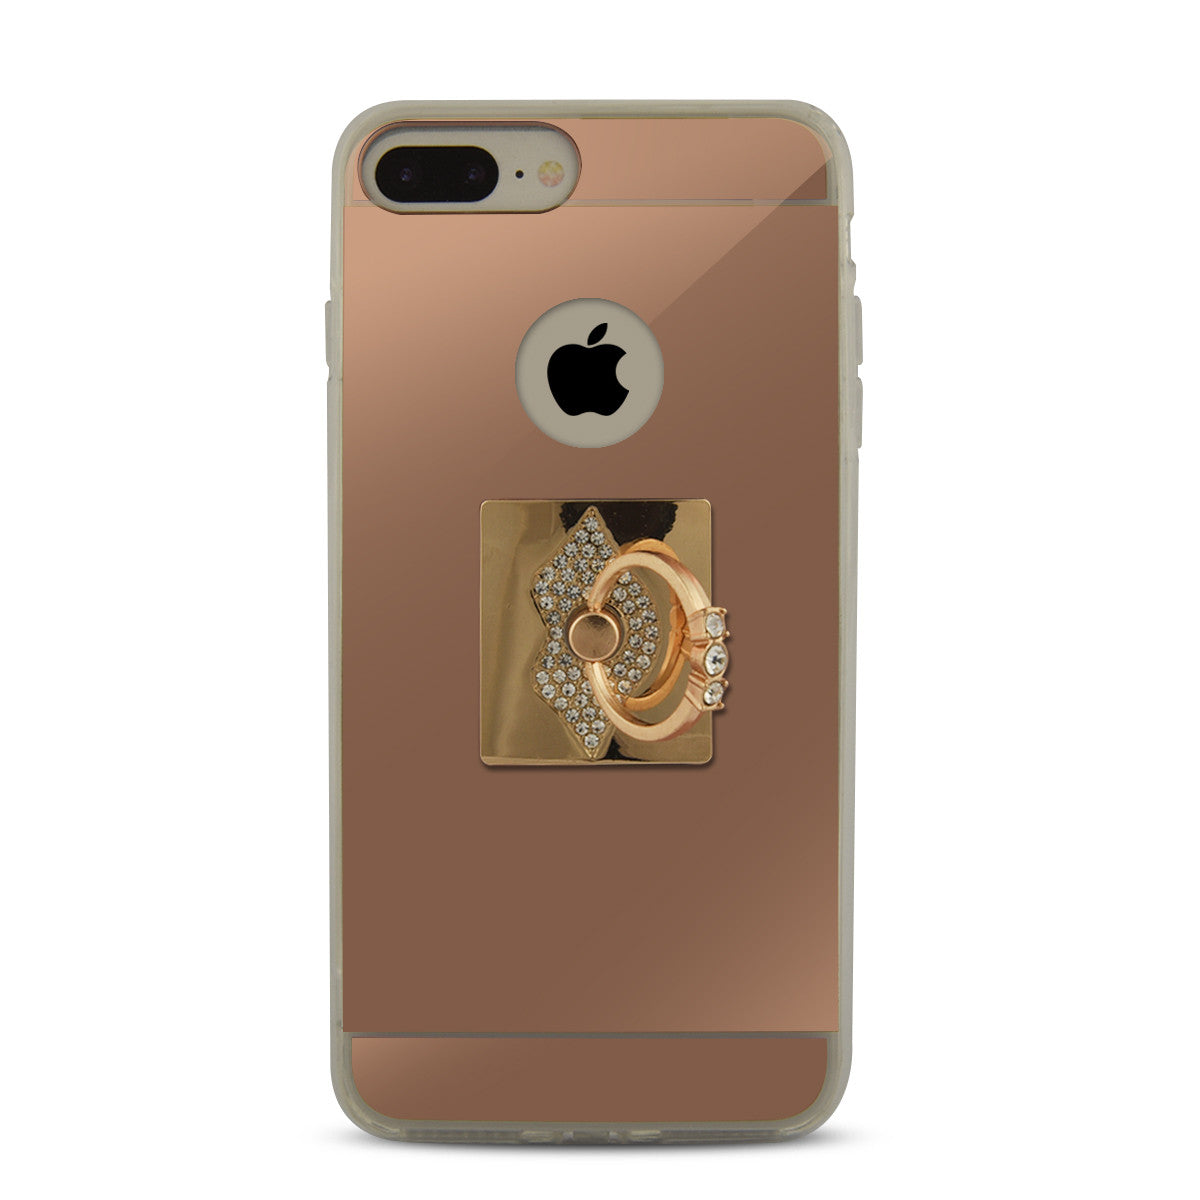 iOrigin iPhone 7 \u0026 7 Plus Rose Gold Mirror Case with Ring Stand/Holder ,  Lips